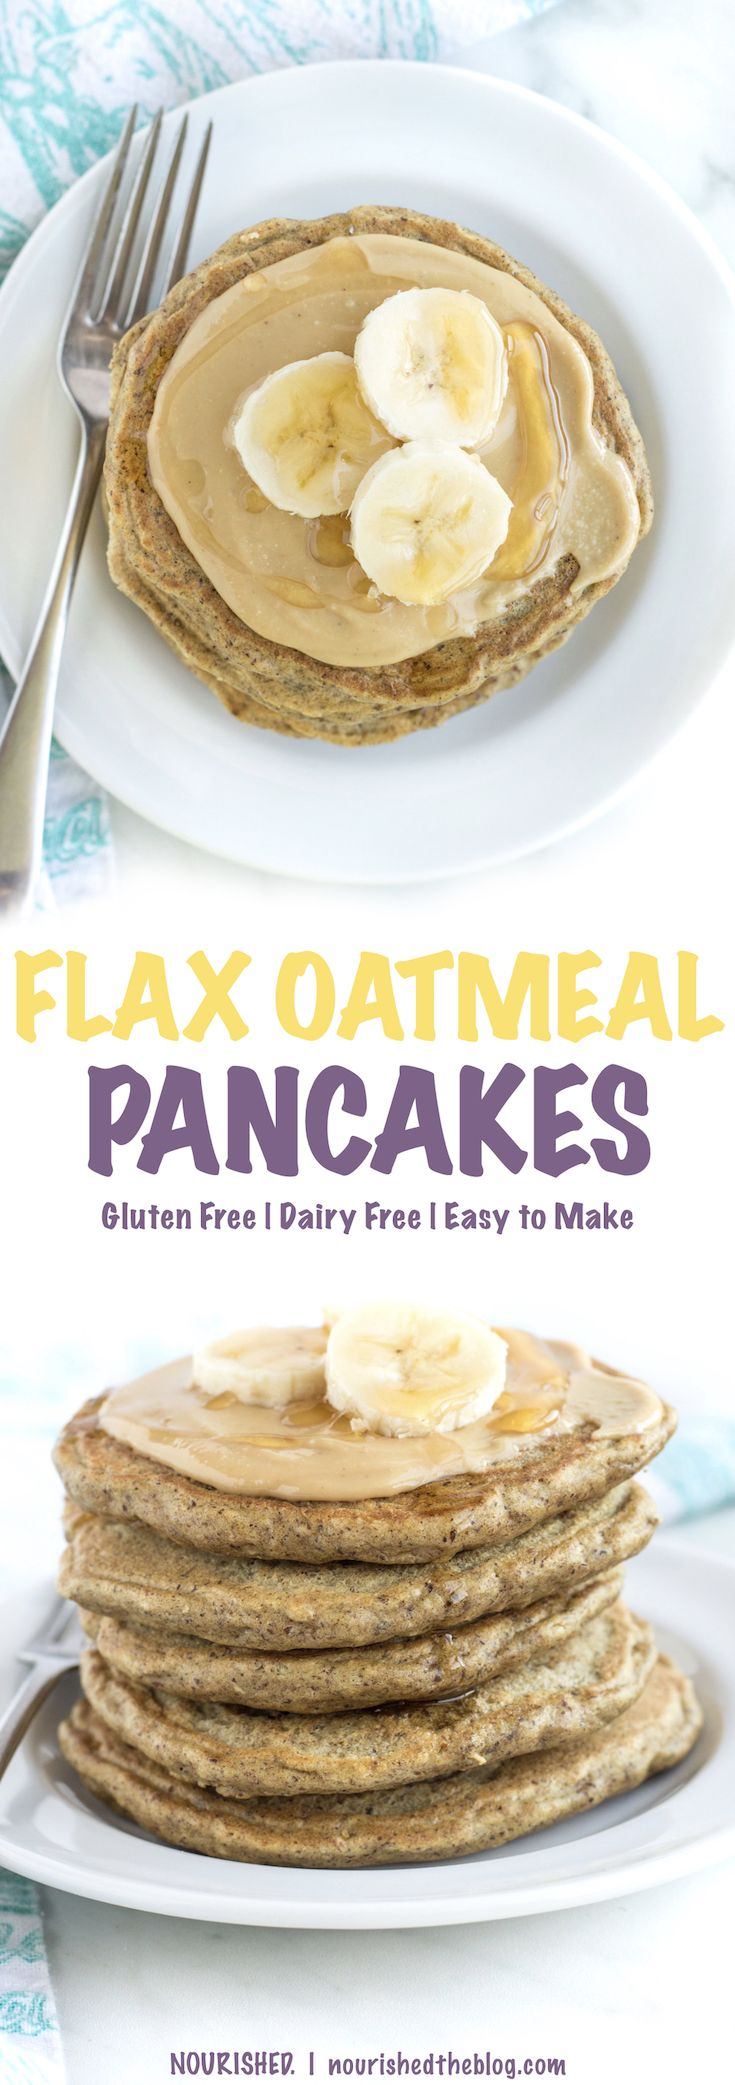 A Gluten Free and Dairy Free pancake recipe that's easy to make with oats, almond flour and ground flaxseeds. A healthy, protein packed and nutritious breakfast to start any day! | nourishedtheblog.com | Gluten Free Flax Oatmeal Pancakes